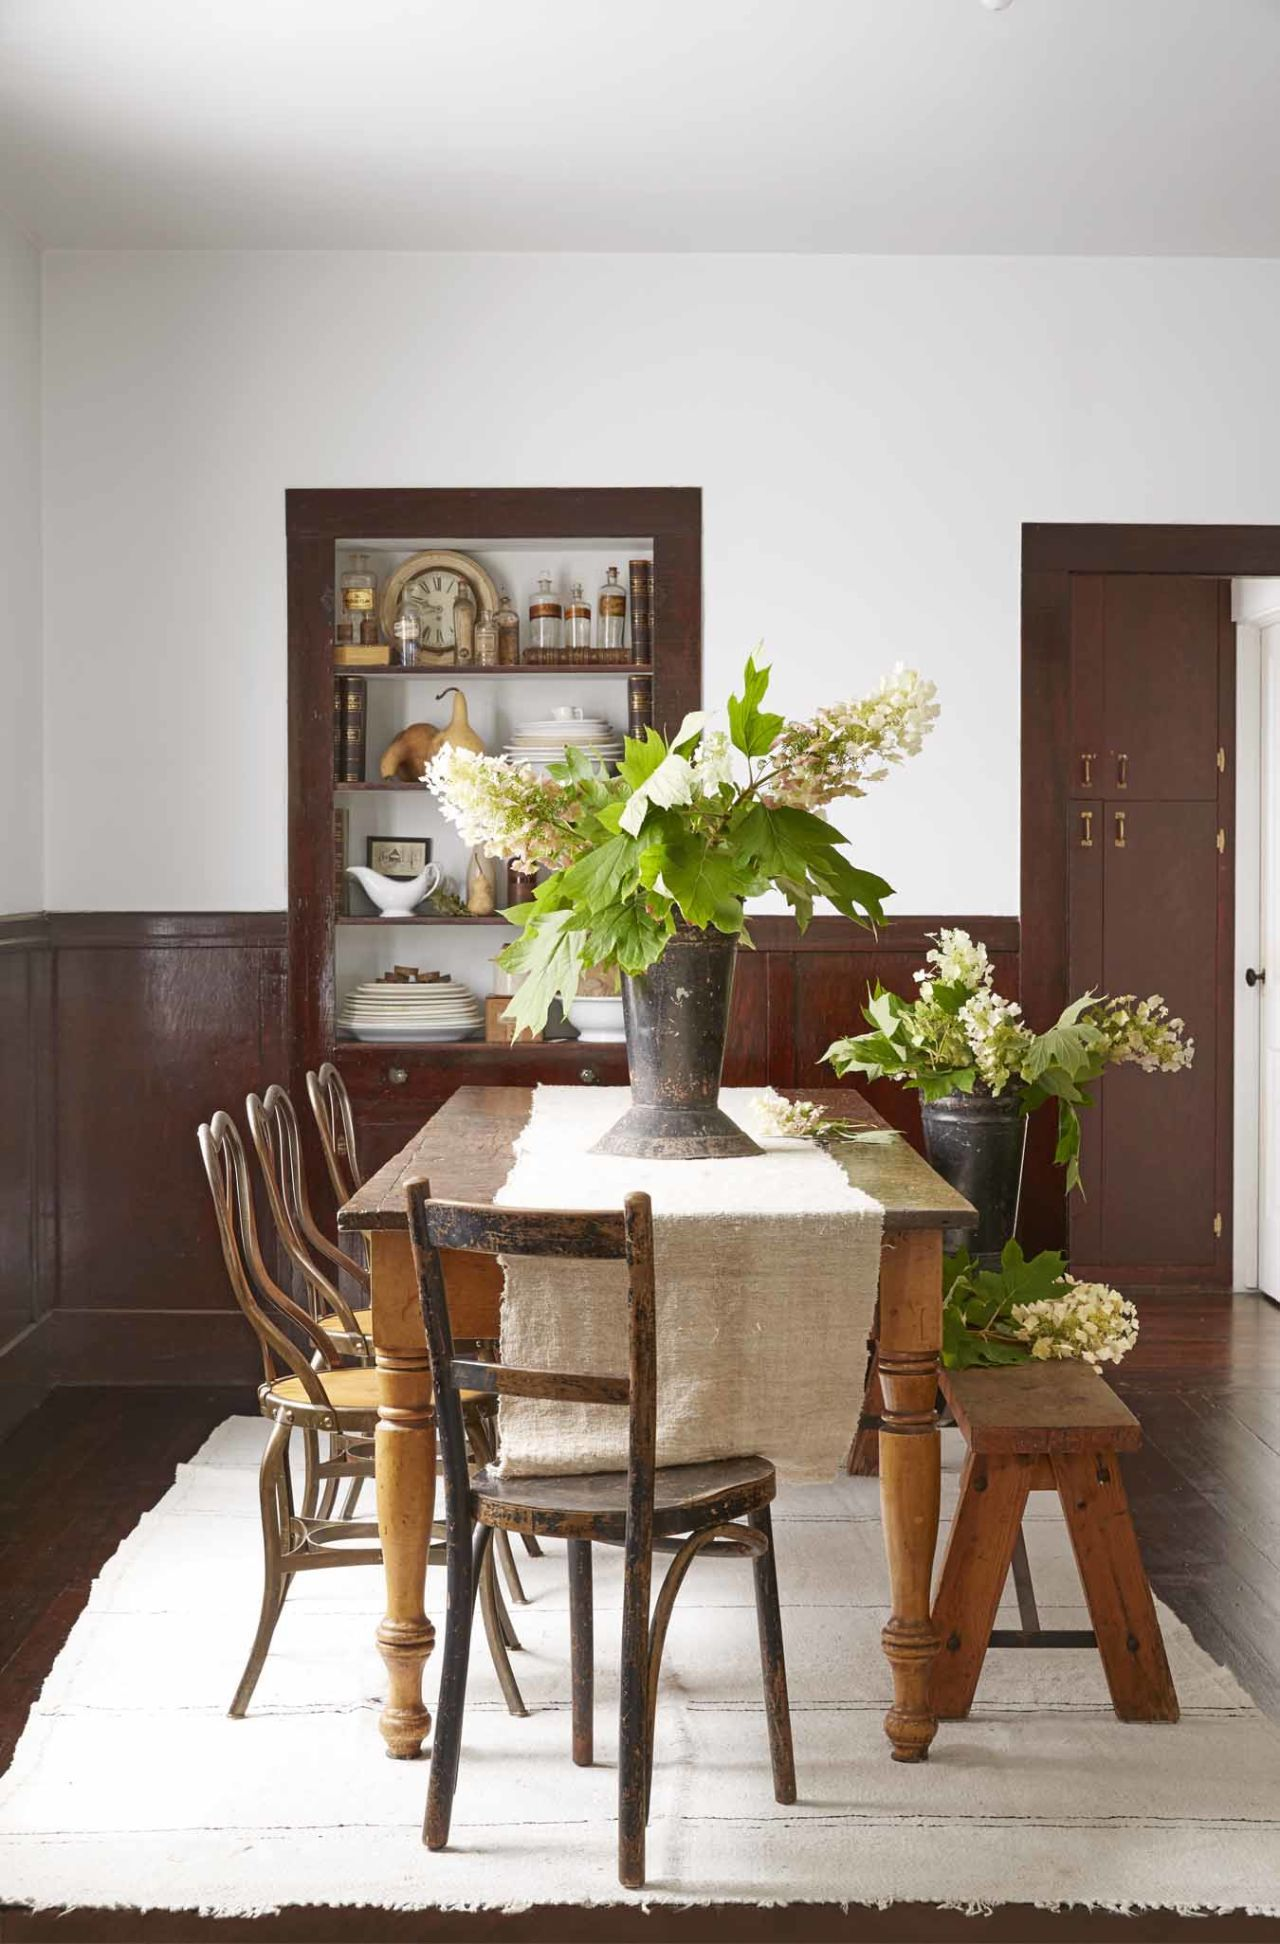 Home interior design dining room forget about farmhouse whiteua new color is taking over homes in